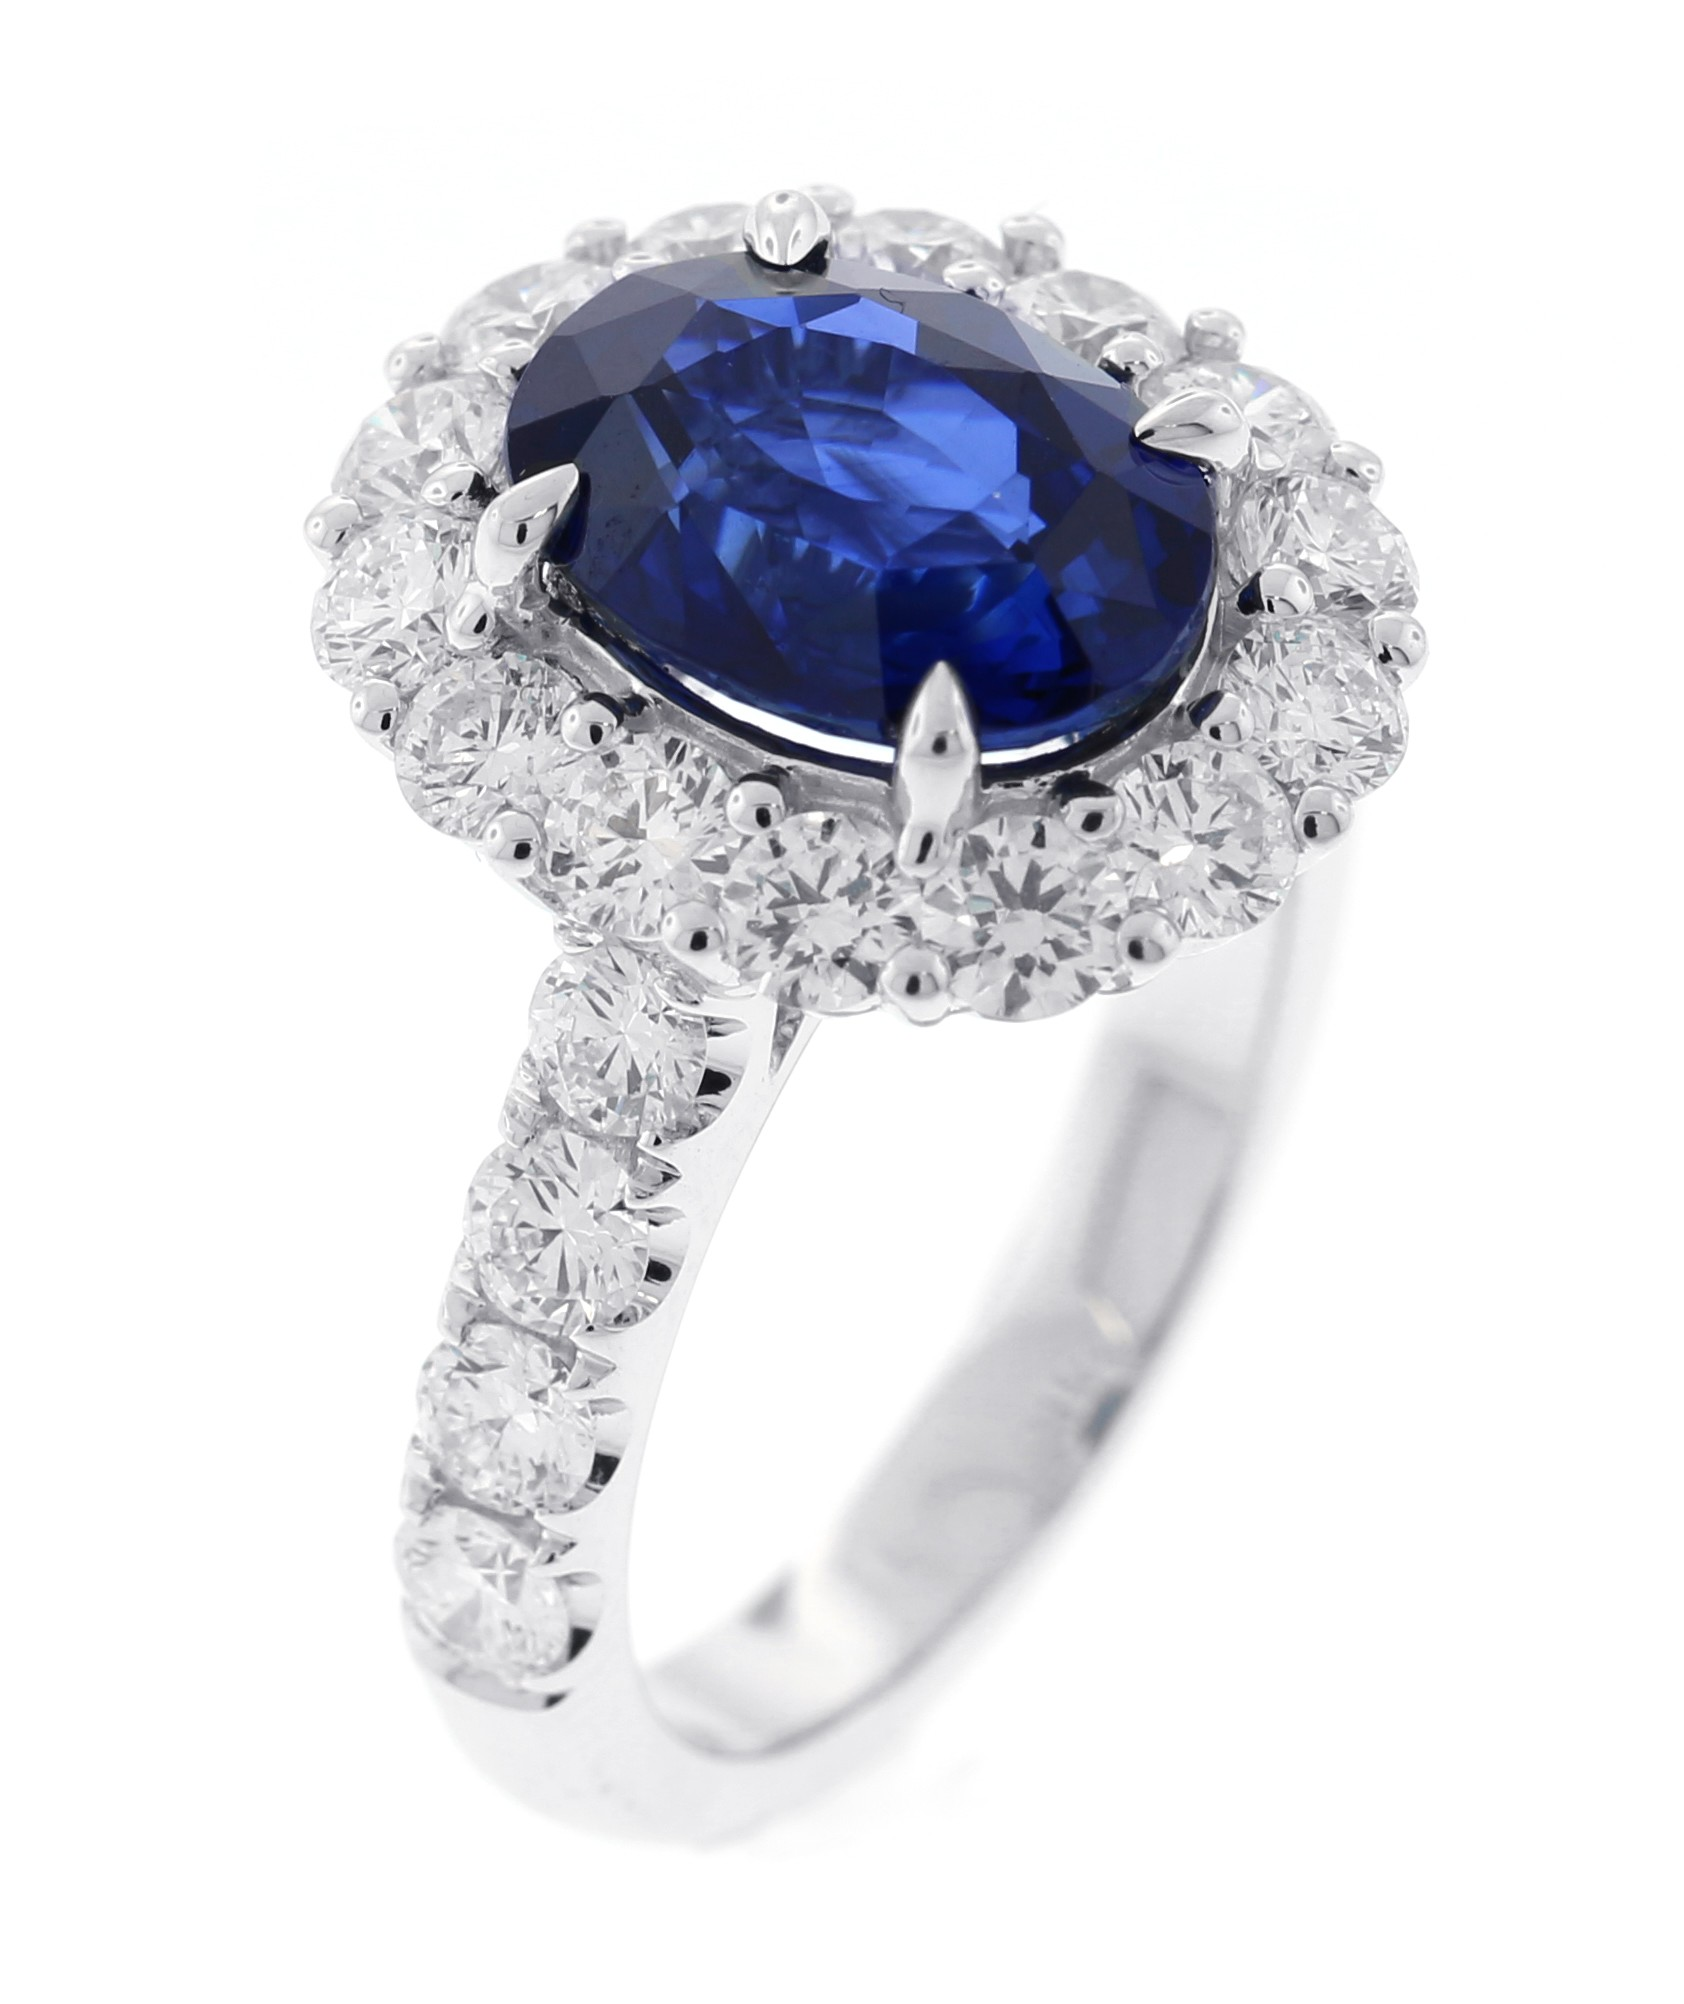 flynn baguettes mfj rings jewellery engagement m custom jewelry boston with shop ring pear sapphire